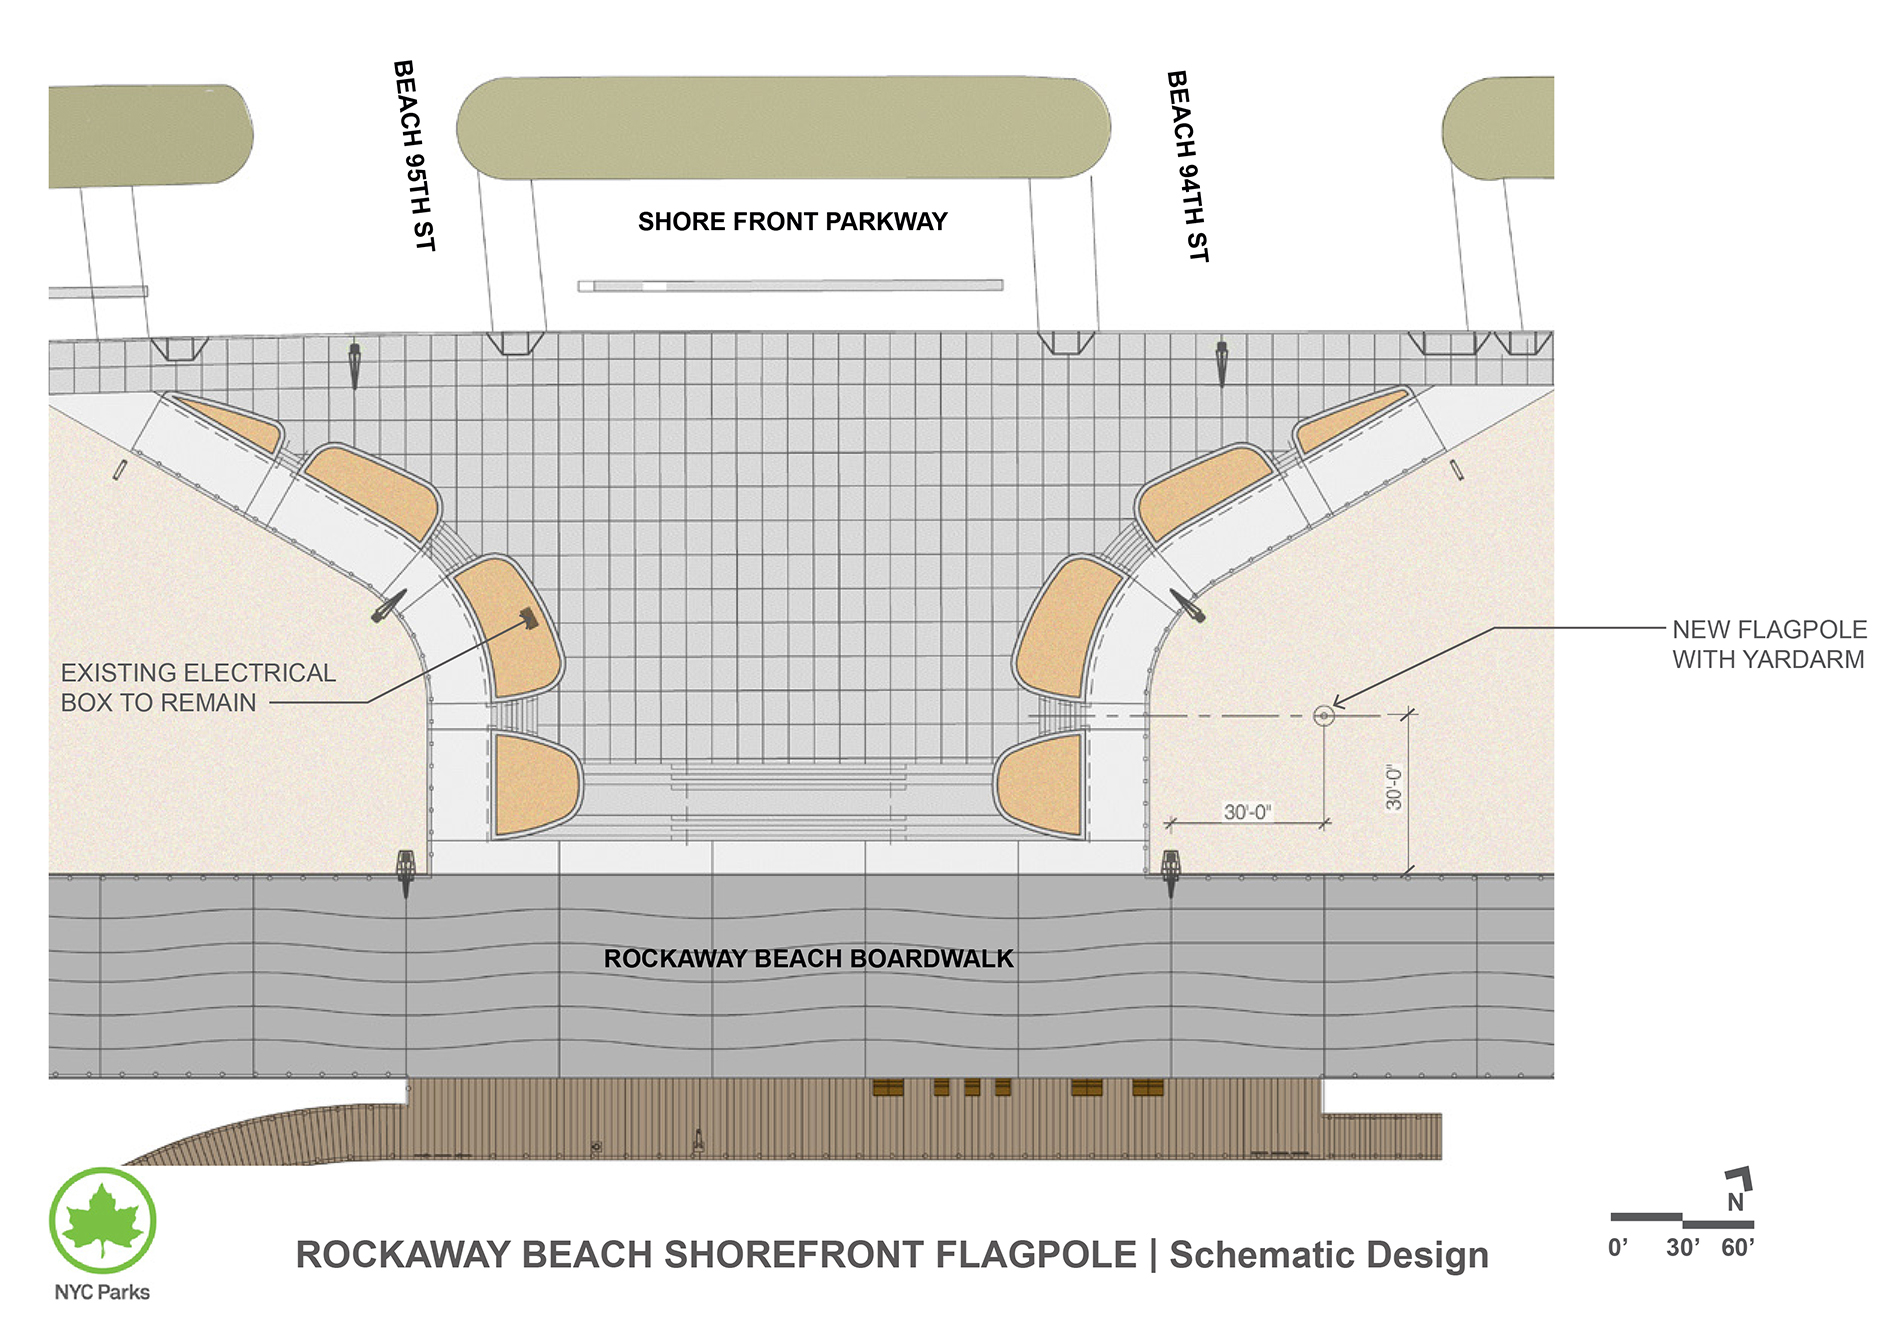 Design of Rockaway Beach Shore Front Flagpole Construction